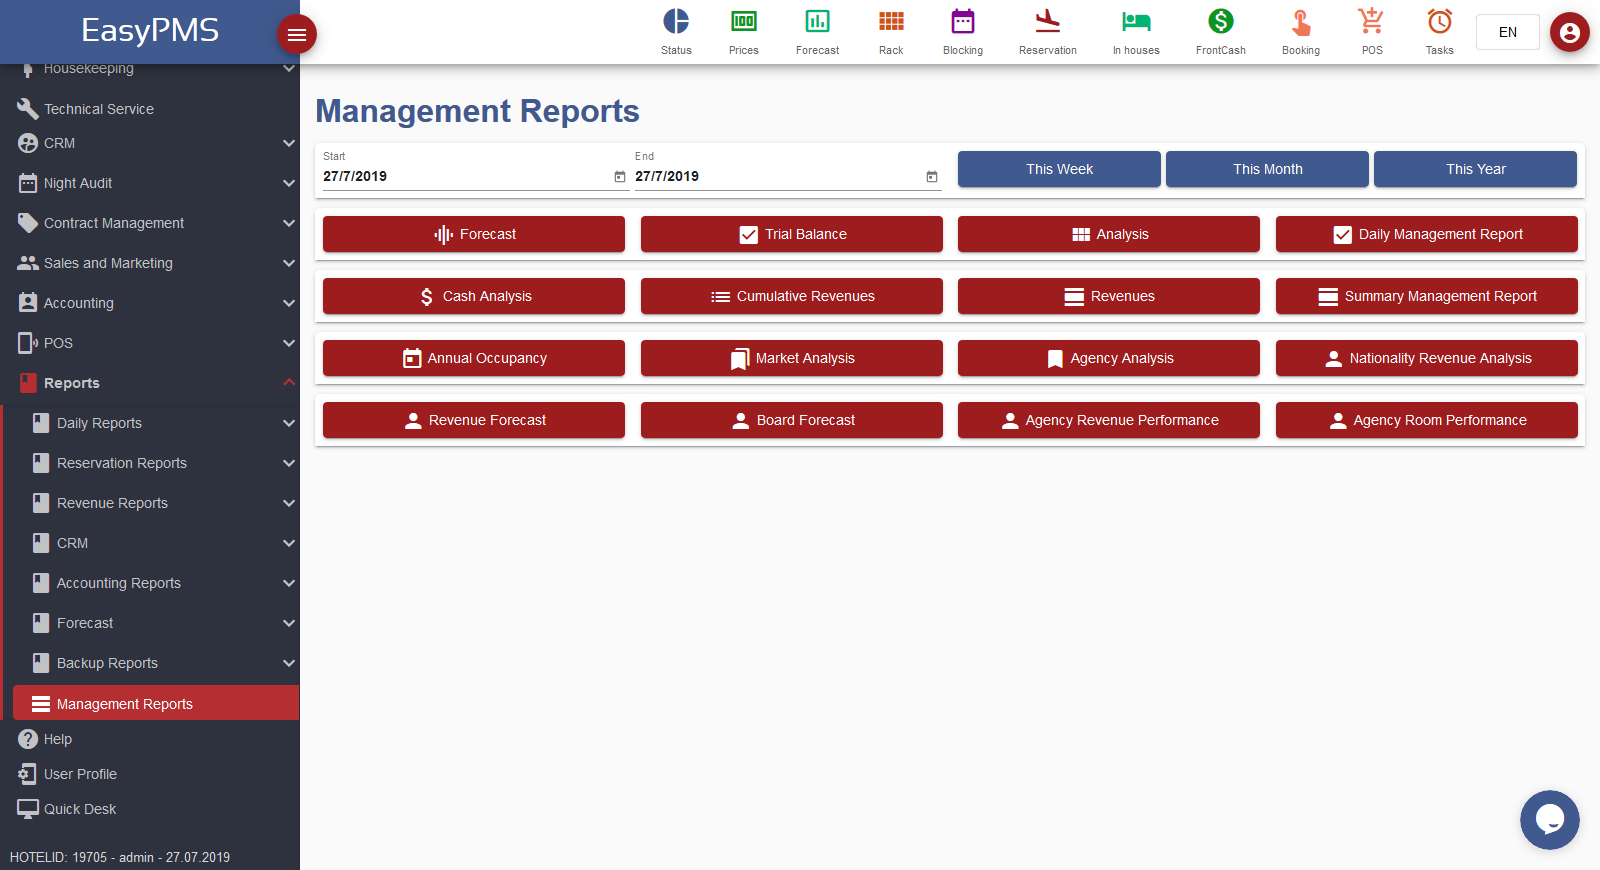 easypms Hotel software Management Reports